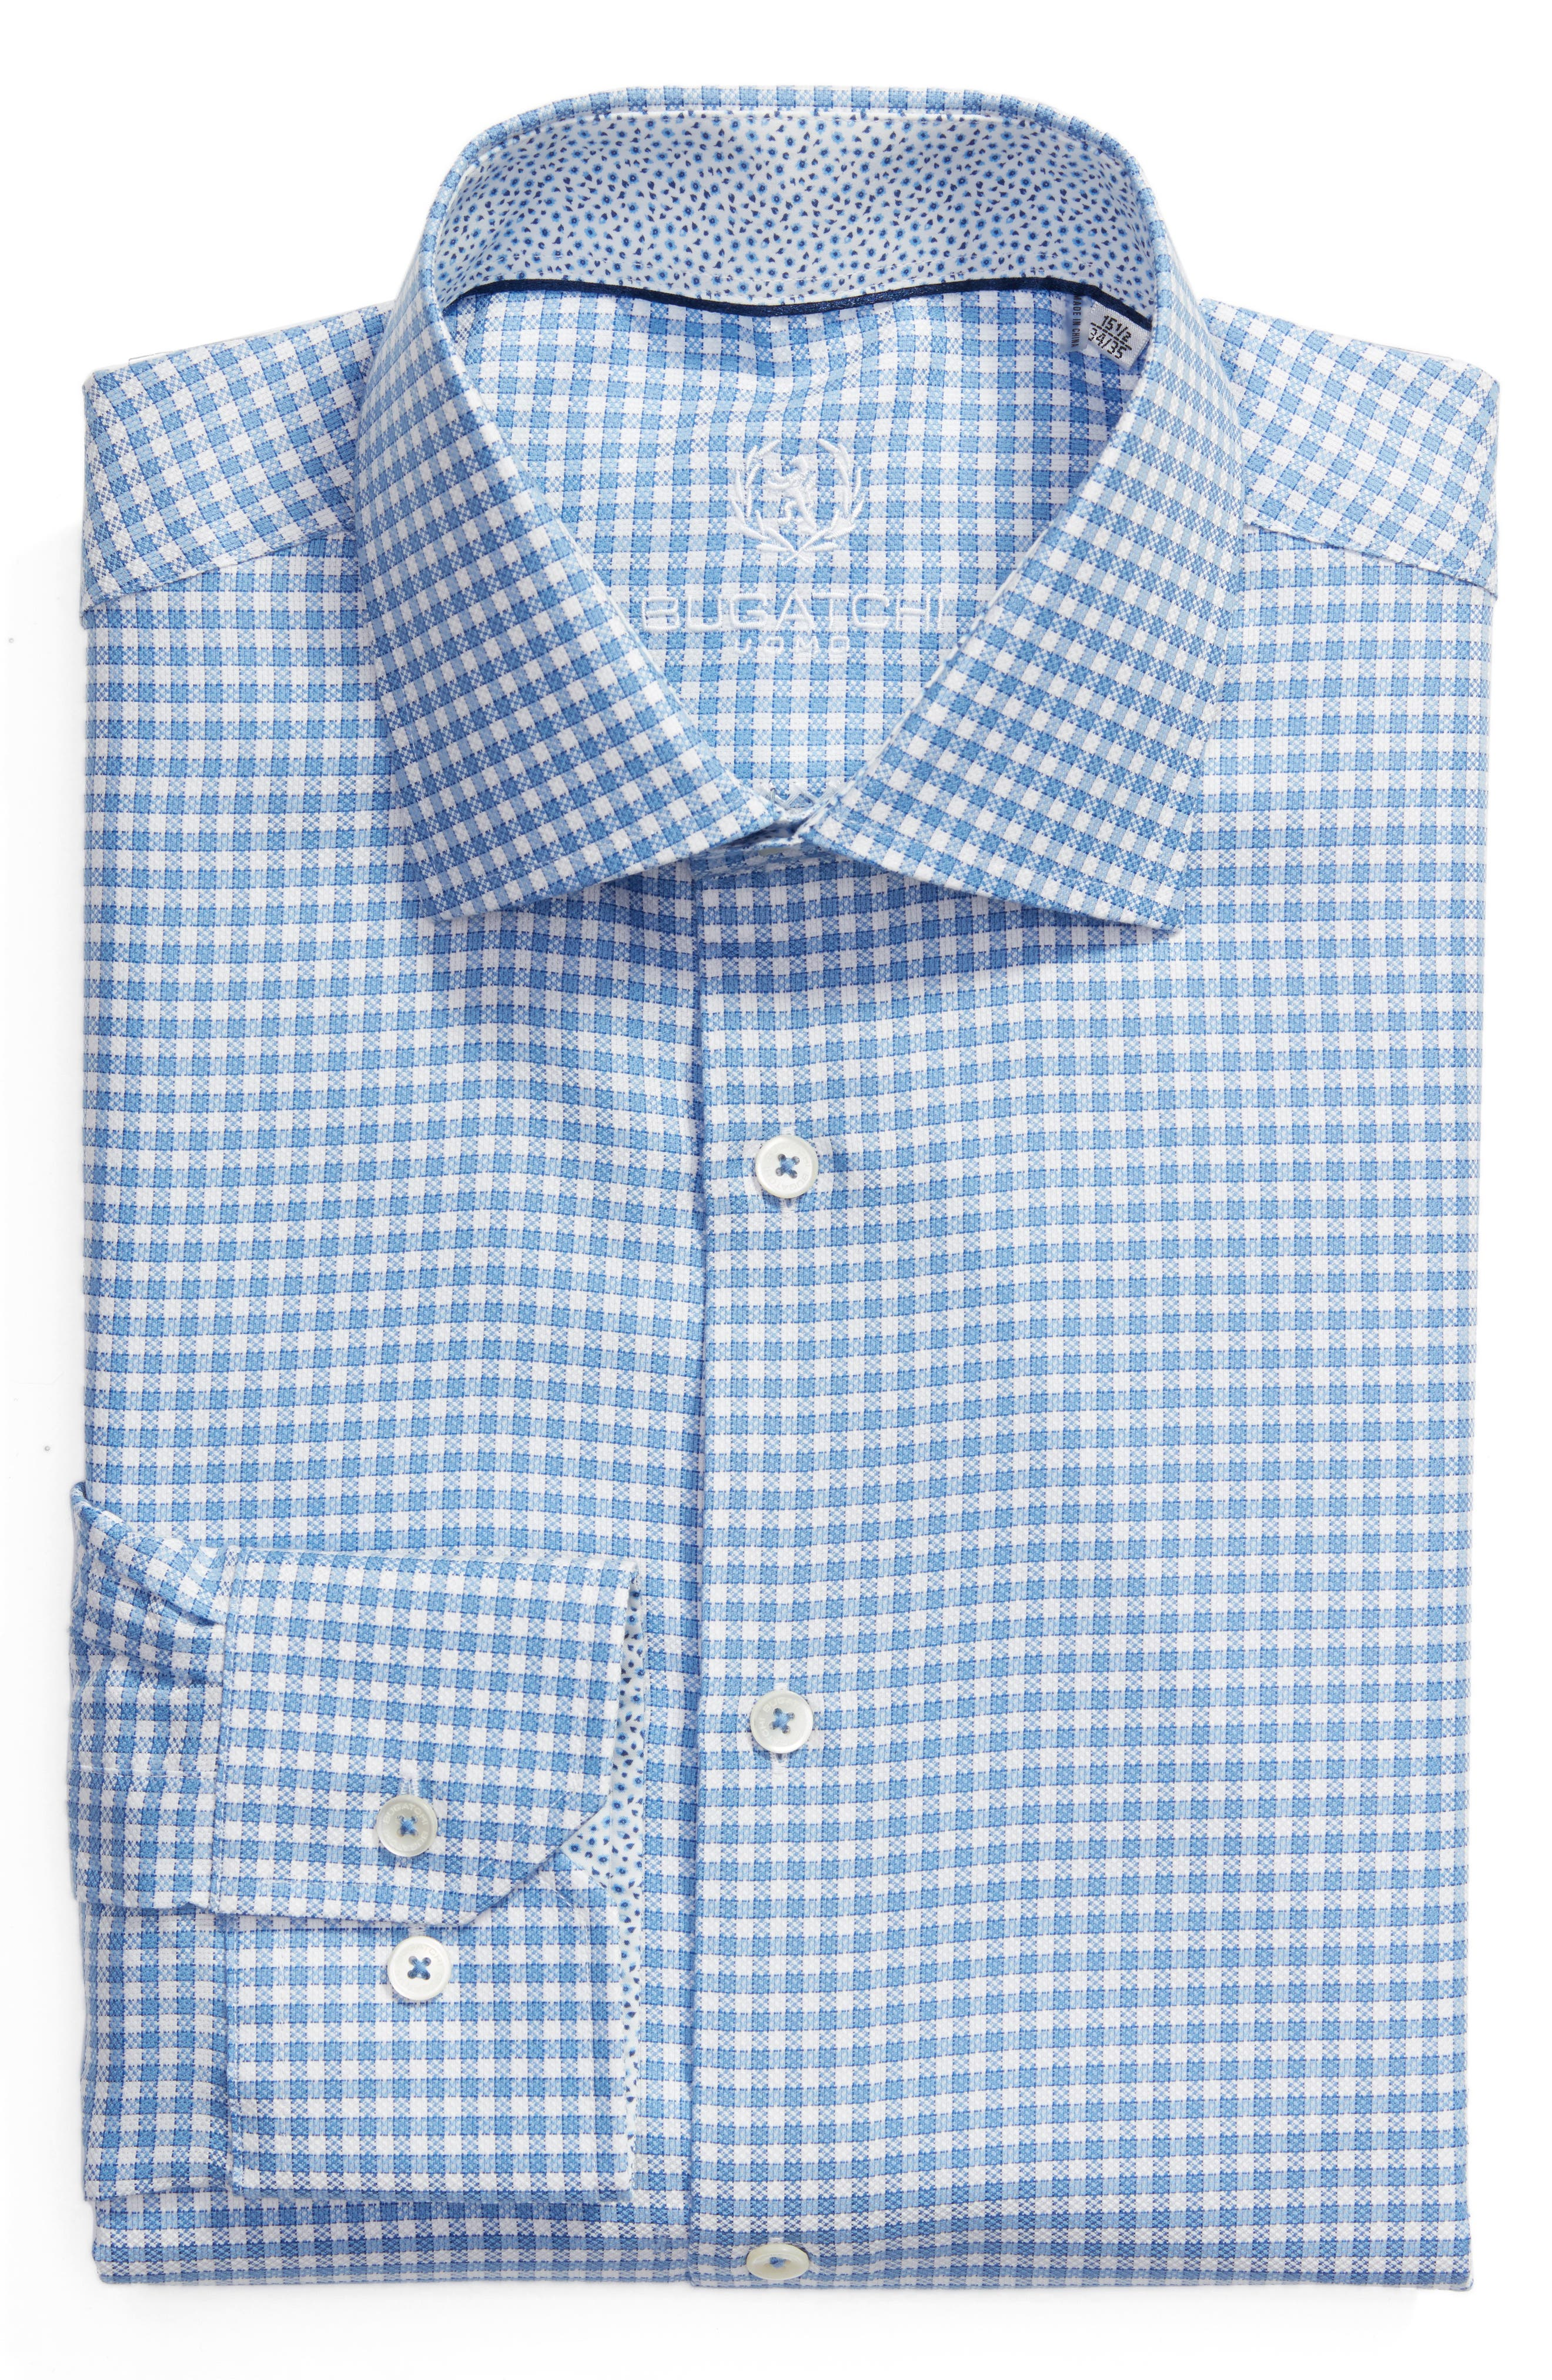 Trim Fit Check Dress Shirt,                         Main,                         color, Sky